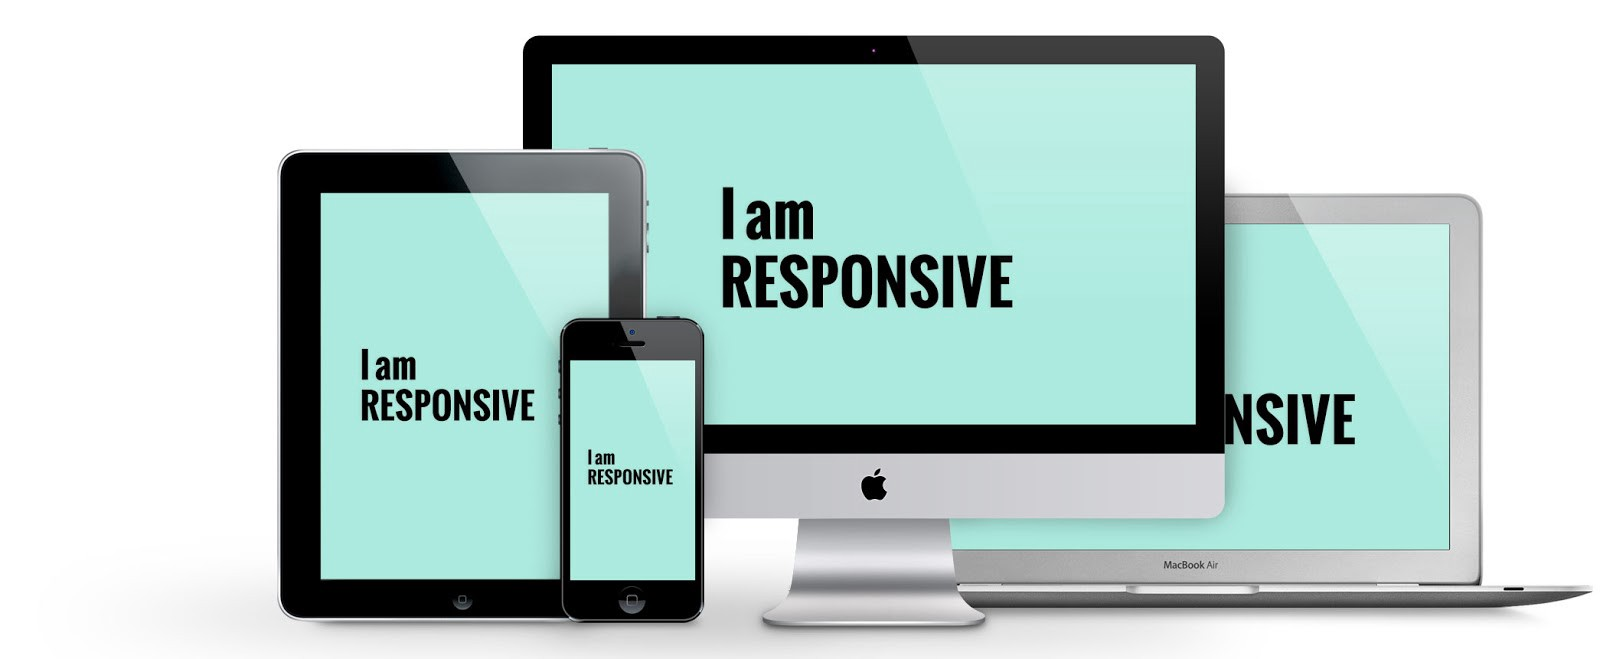 Why is it so important to make your web designs responsive?